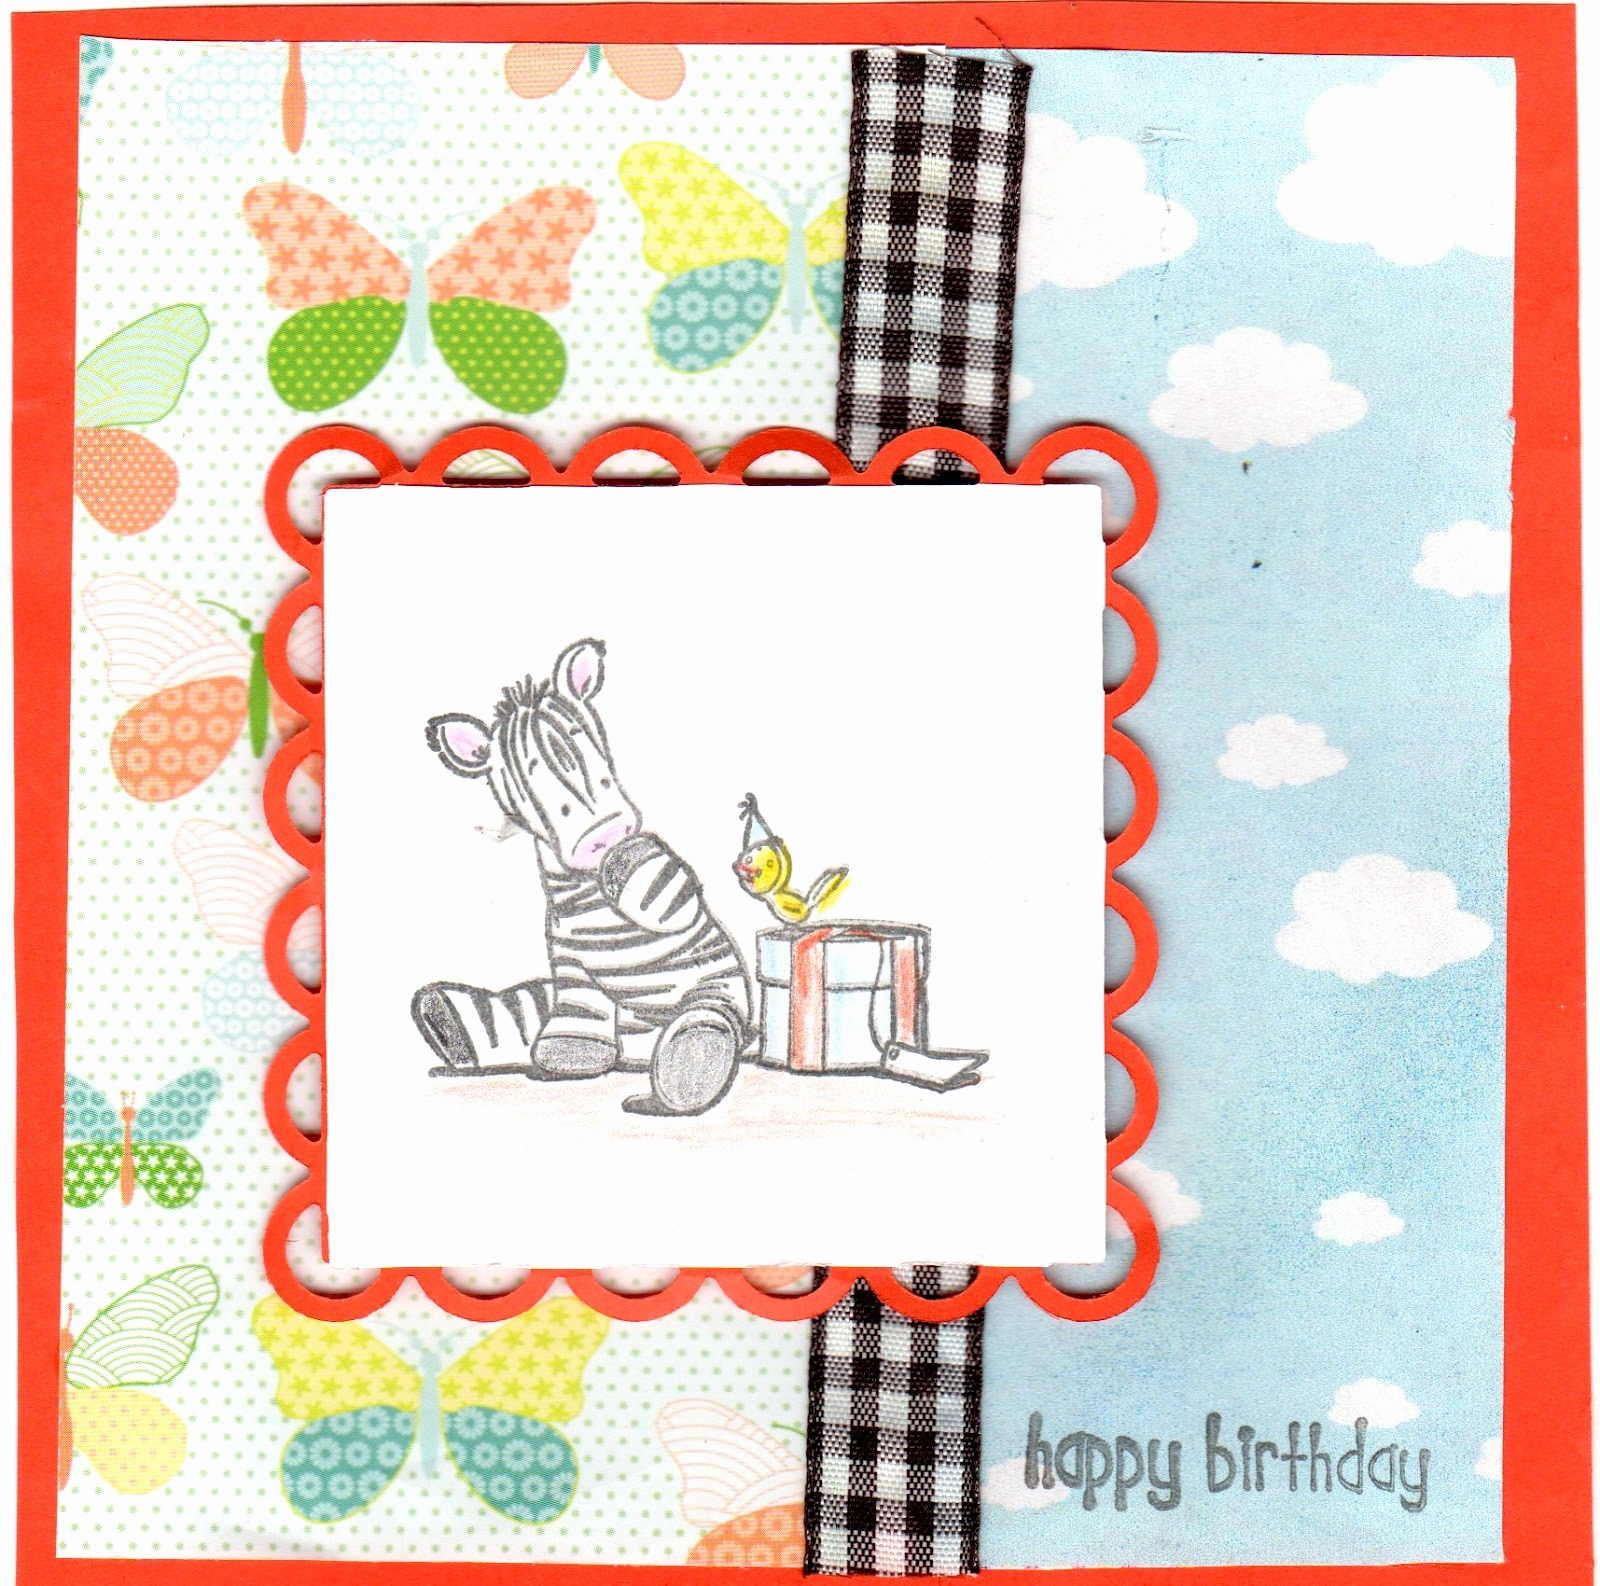 birthday card ideas for 18 year olds ; 18-year-old-birthday-card-messages-beautiful-elegant-birthday-card-wishes-eccleshallfc-of-18-year-old-birthday-card-messages